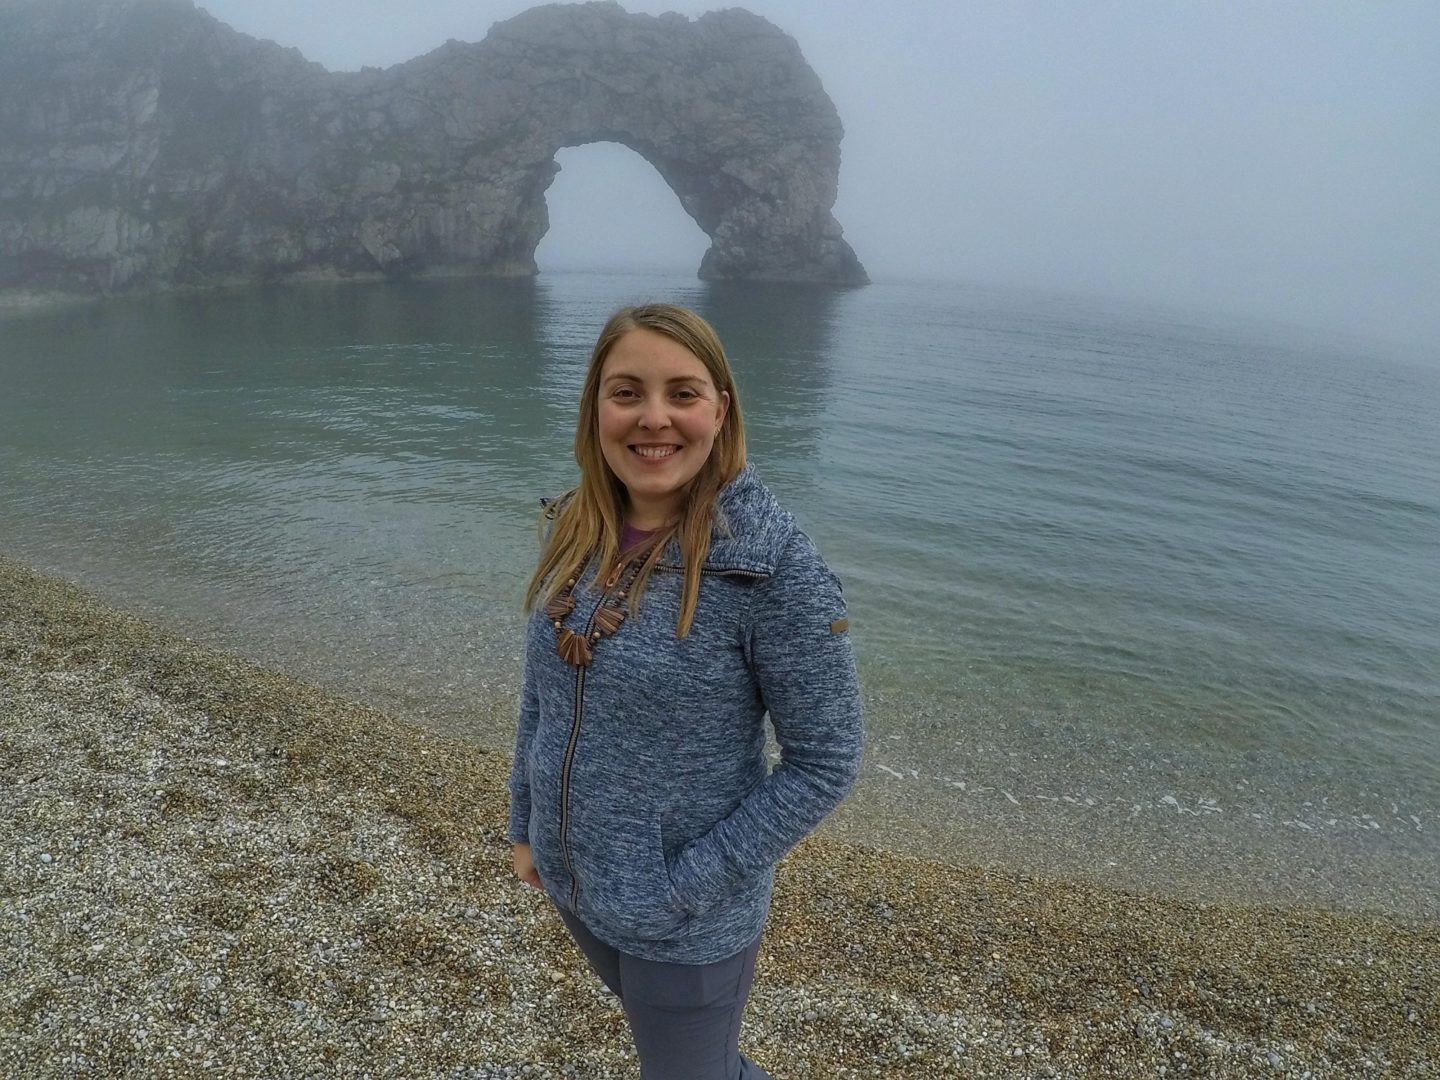 Camping on the Jurassic Coast